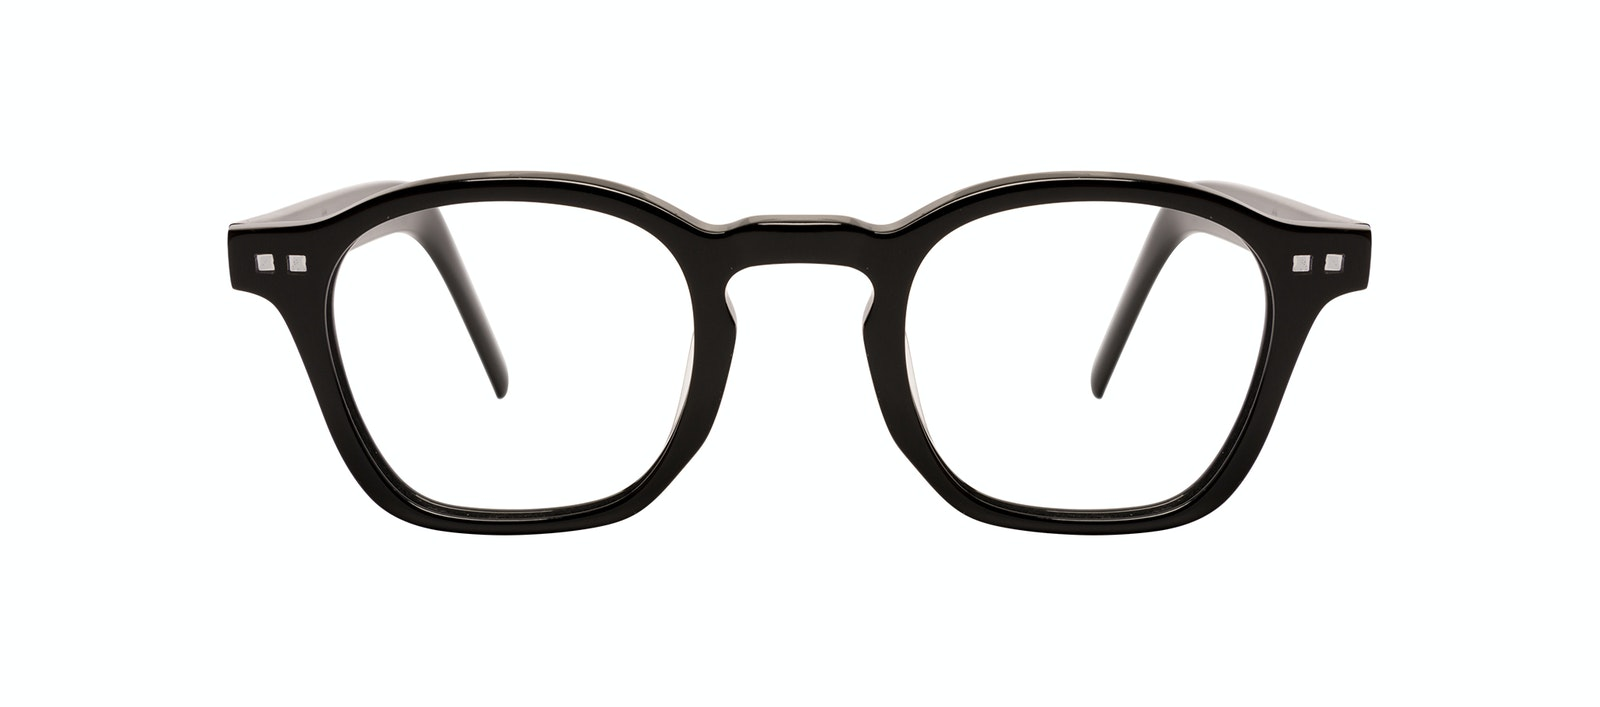 Affordable Fashion Glasses Square Eyeglasses Men Brisk Onyx Front